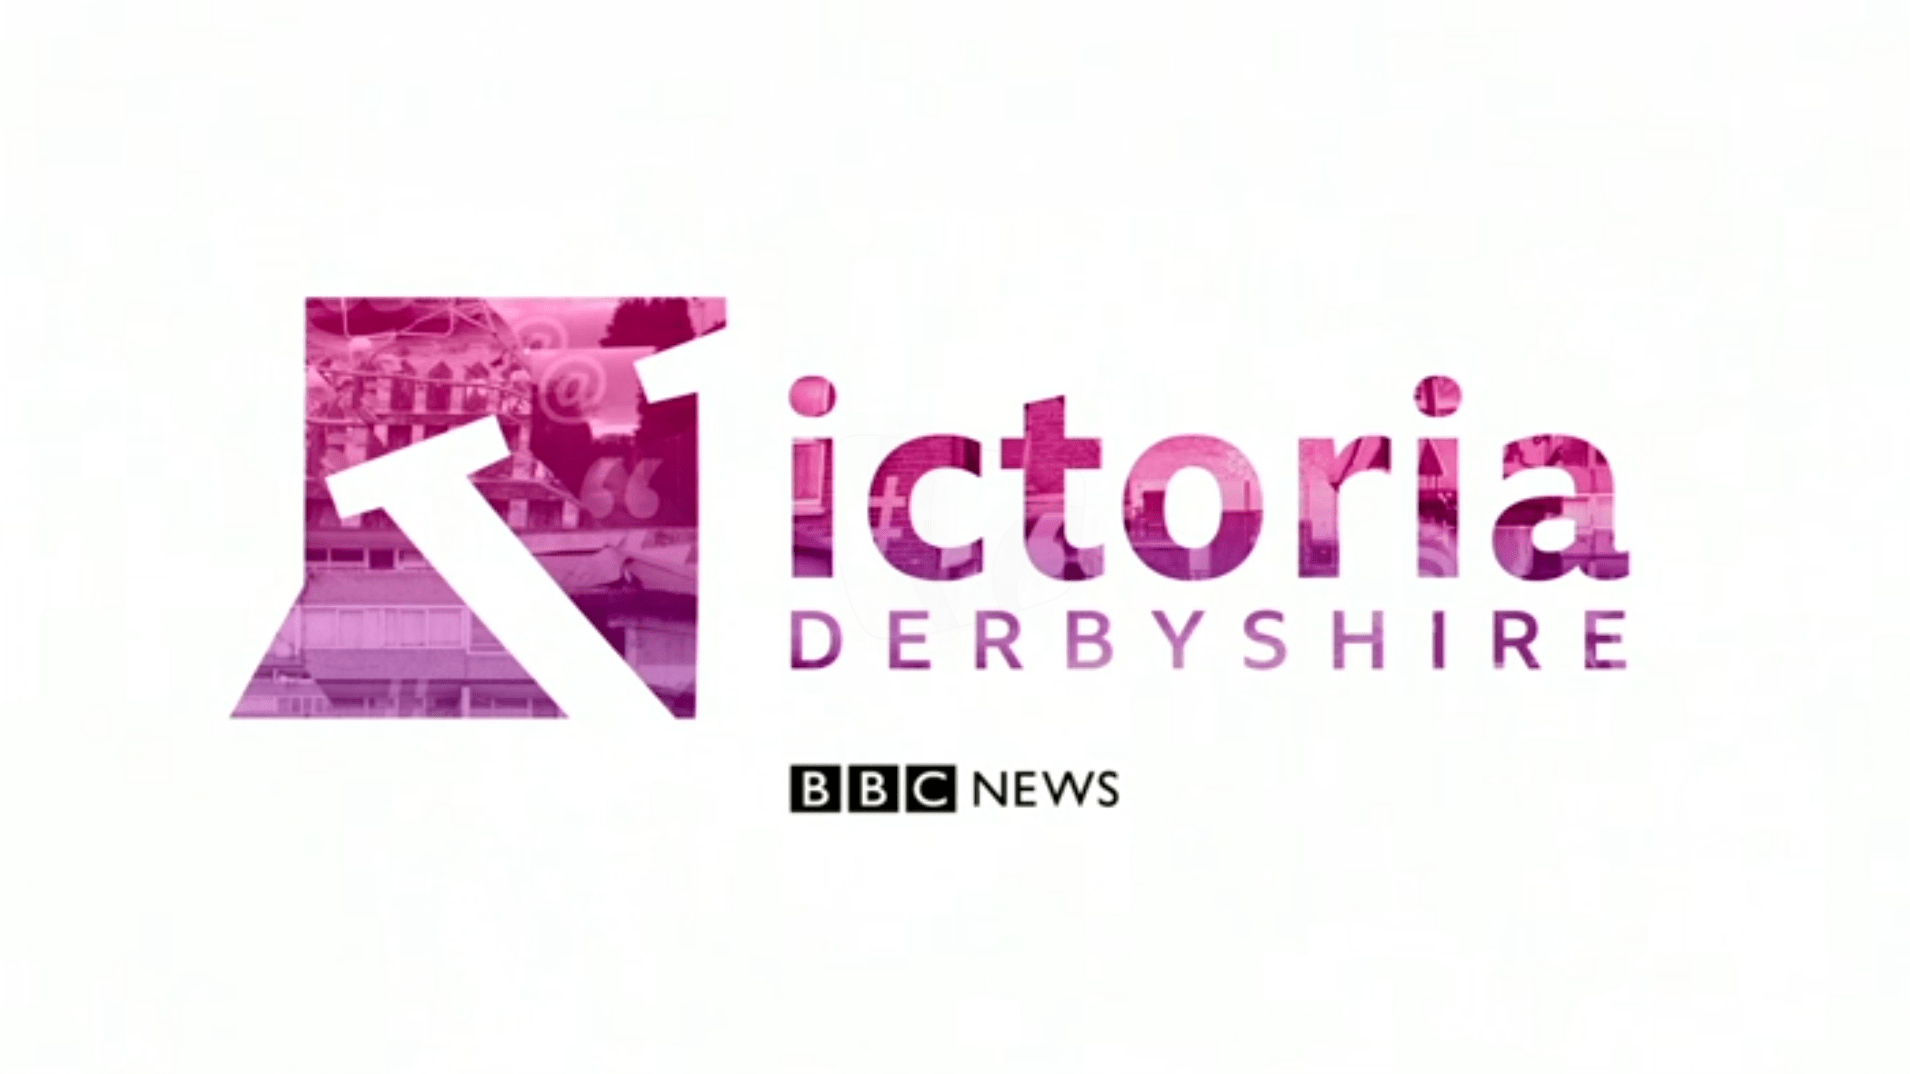 PICTURED: Victoria Derbyshire opening titles.